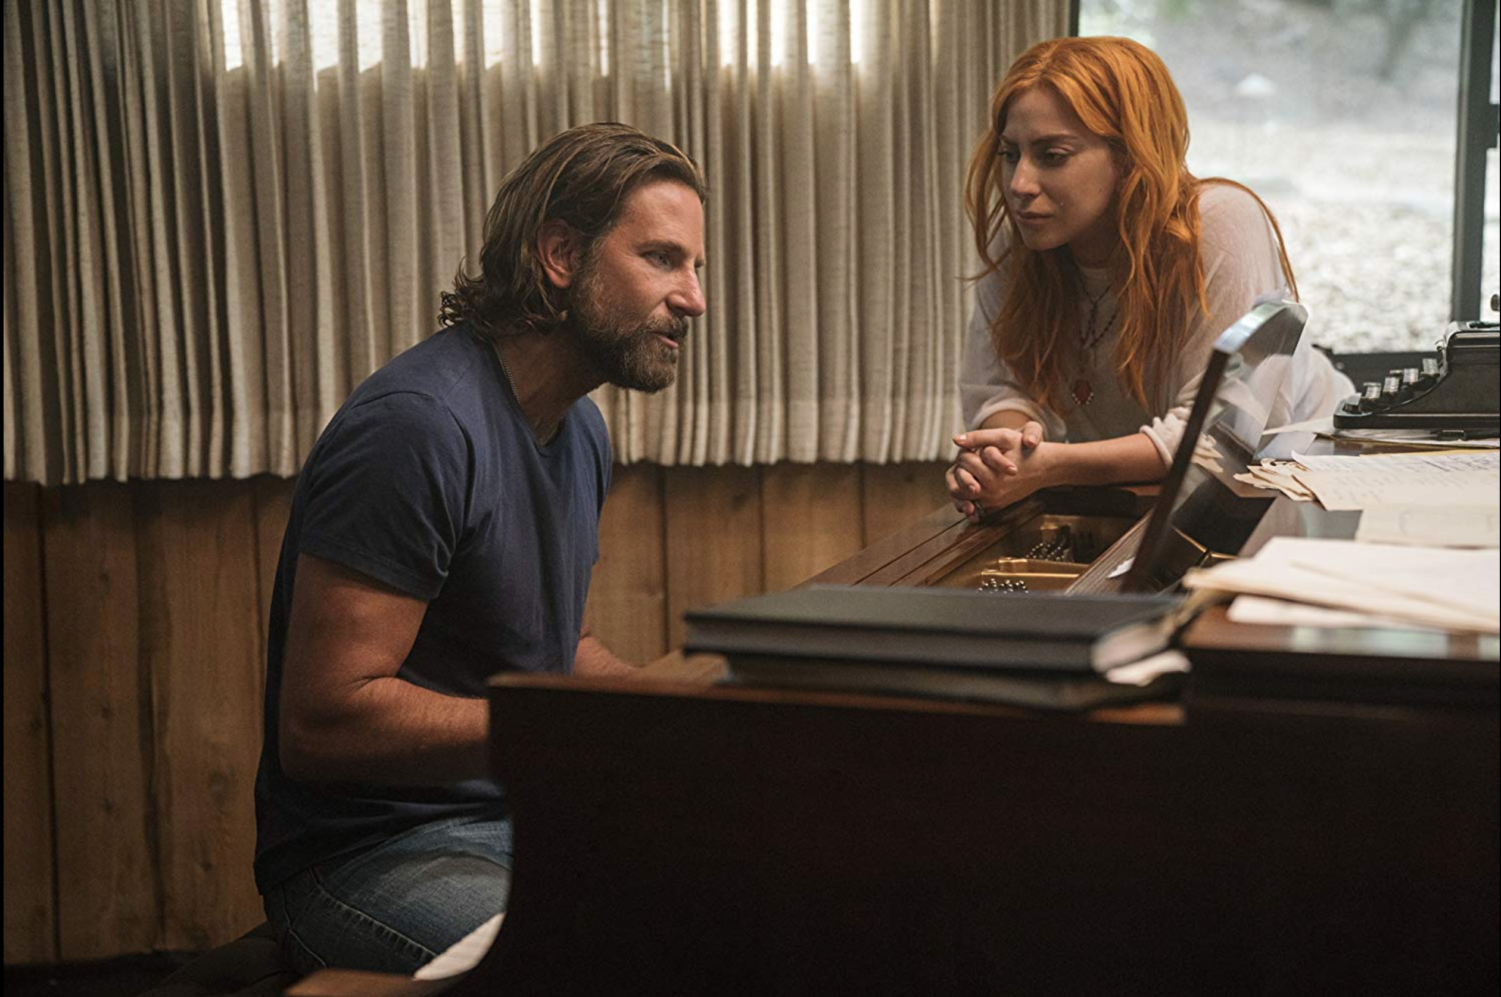 'A Star Is Born' captures the connection between an unlikely pair of music lovers, Jack and Ally, played by Bradley Cooper and Lady Gaga.